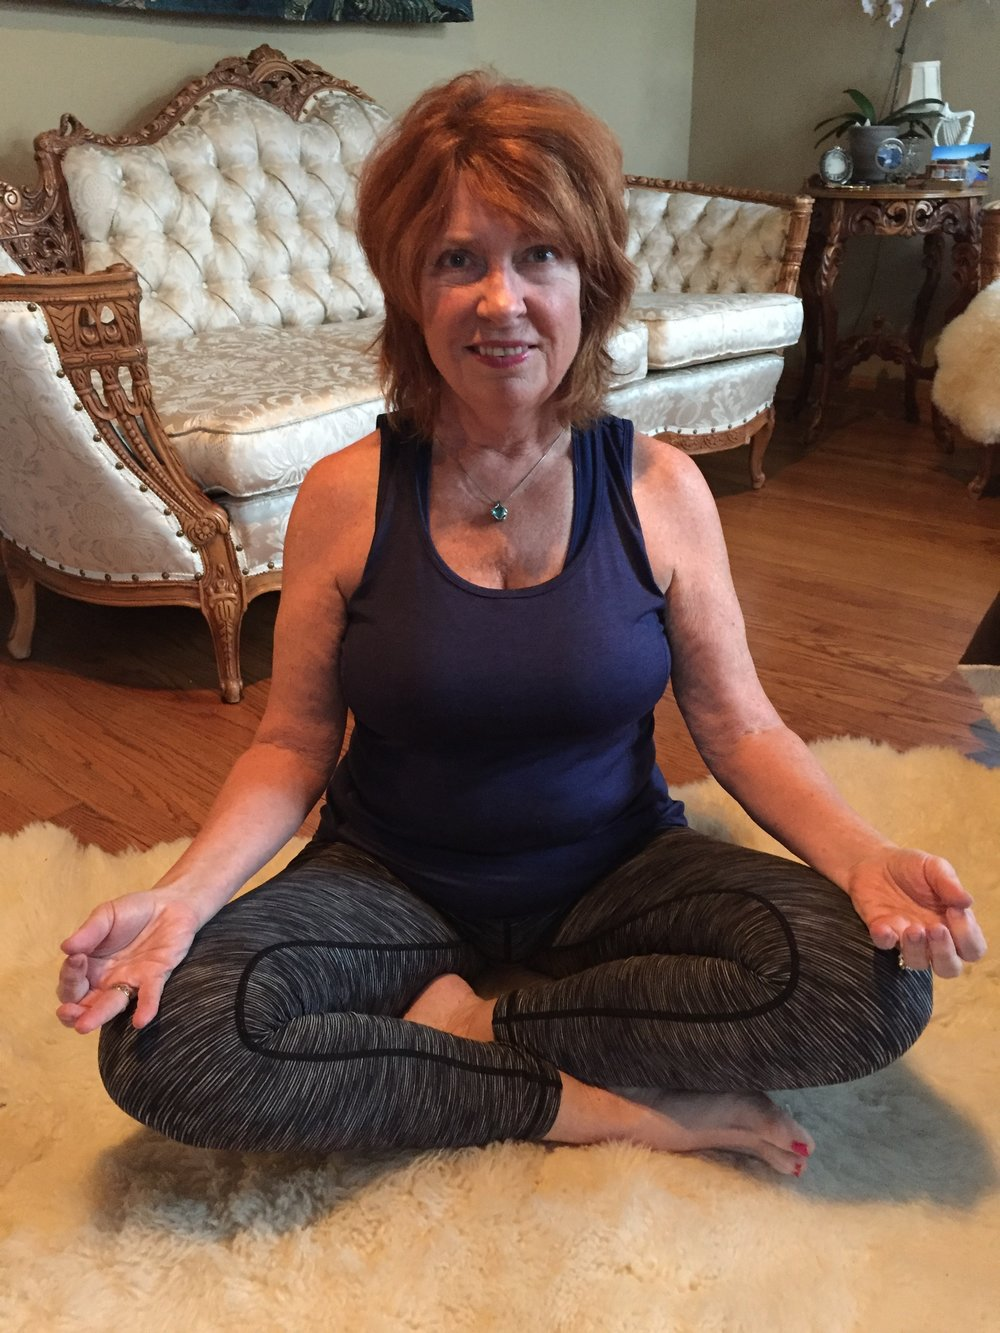 Maureen Ryan - Teaches: Yoga with Maureen, Yoga Nidra: Experience the Beauty of Deep Rest, Yoga in the Forest!Read More about Maureen Here